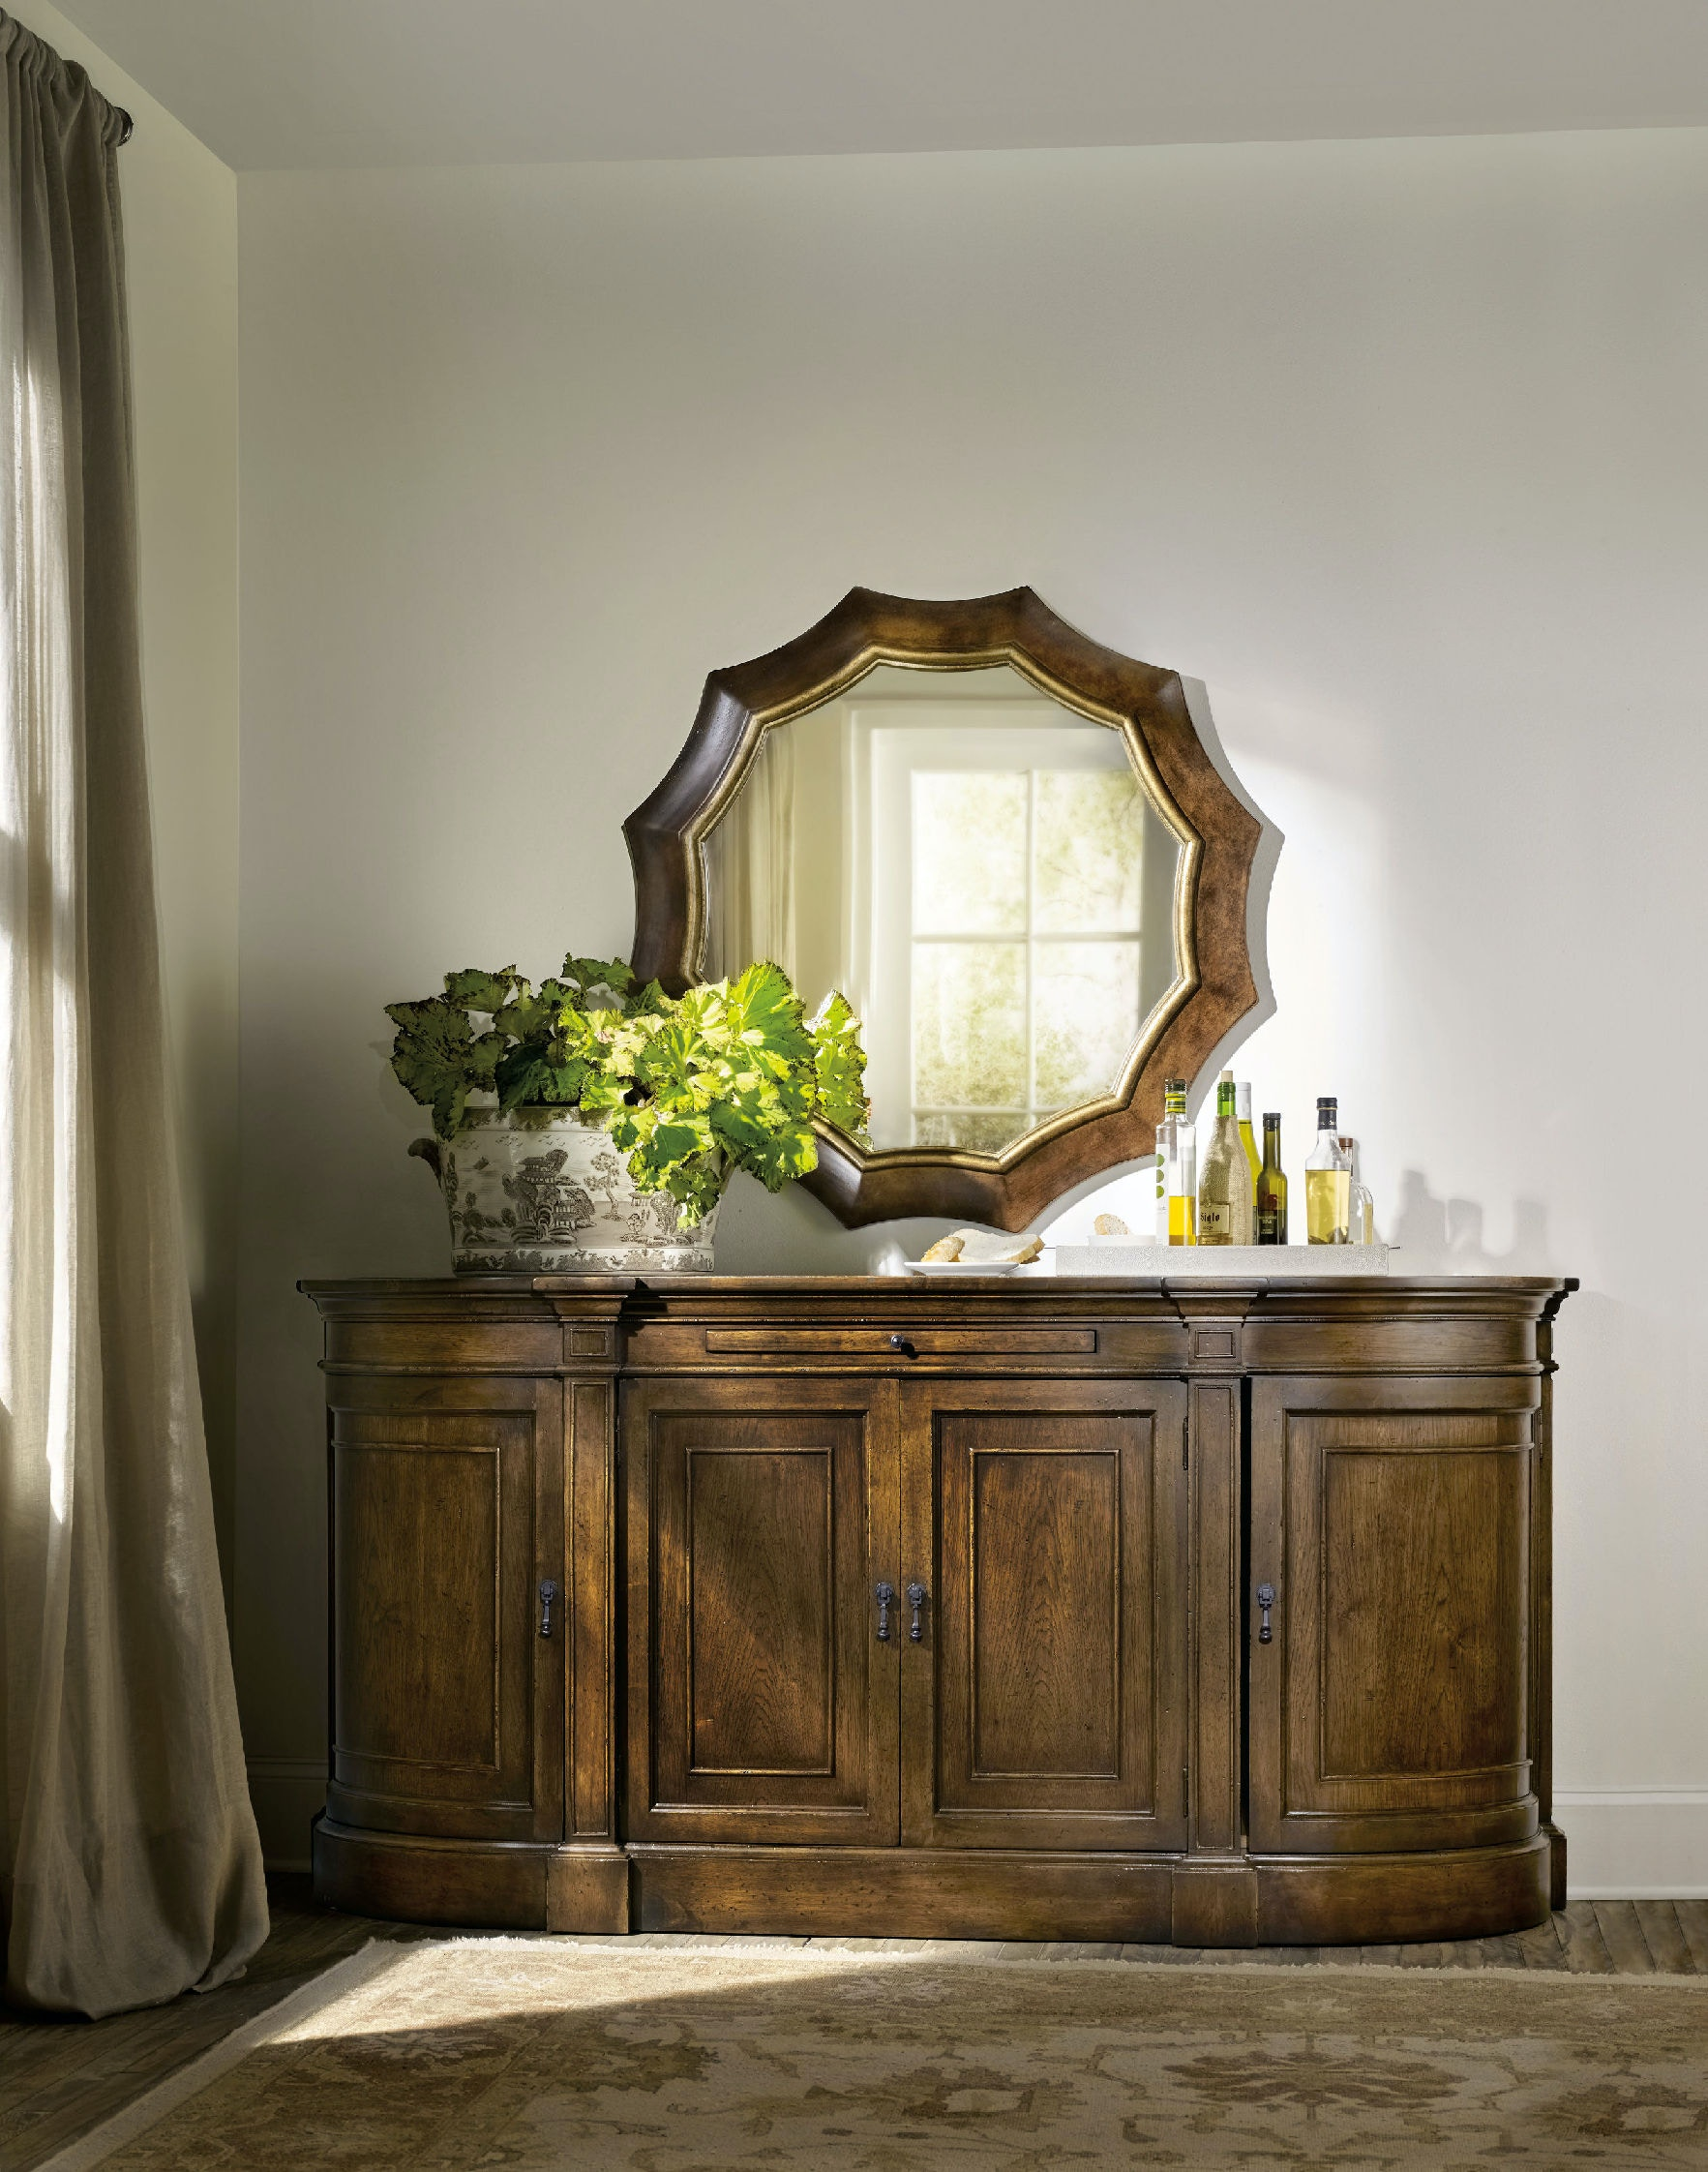 Hooker Furniture Bedroom Archivist Accent Mirror 5447-90009 - McCreerys Home Furnishings ...